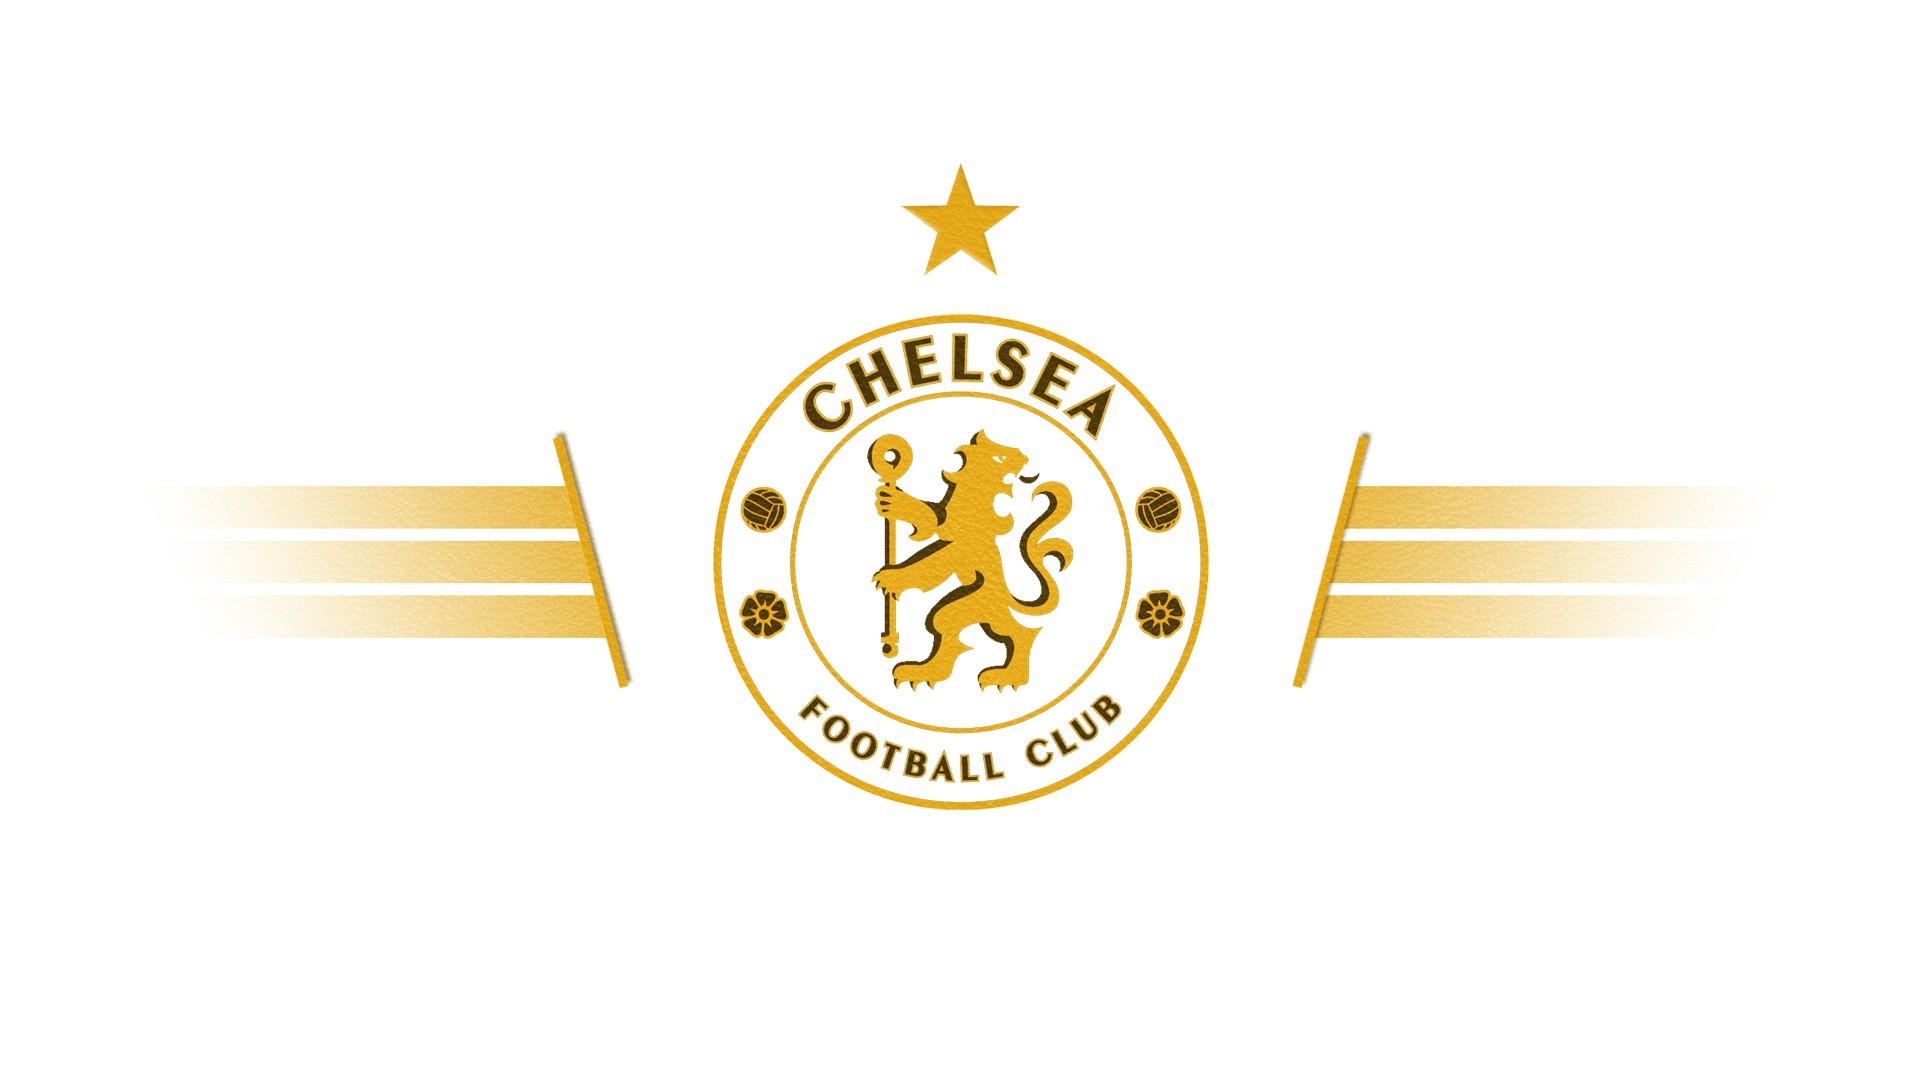 Chelsea Logo Wallpaper 2015 - WallpaperSafari